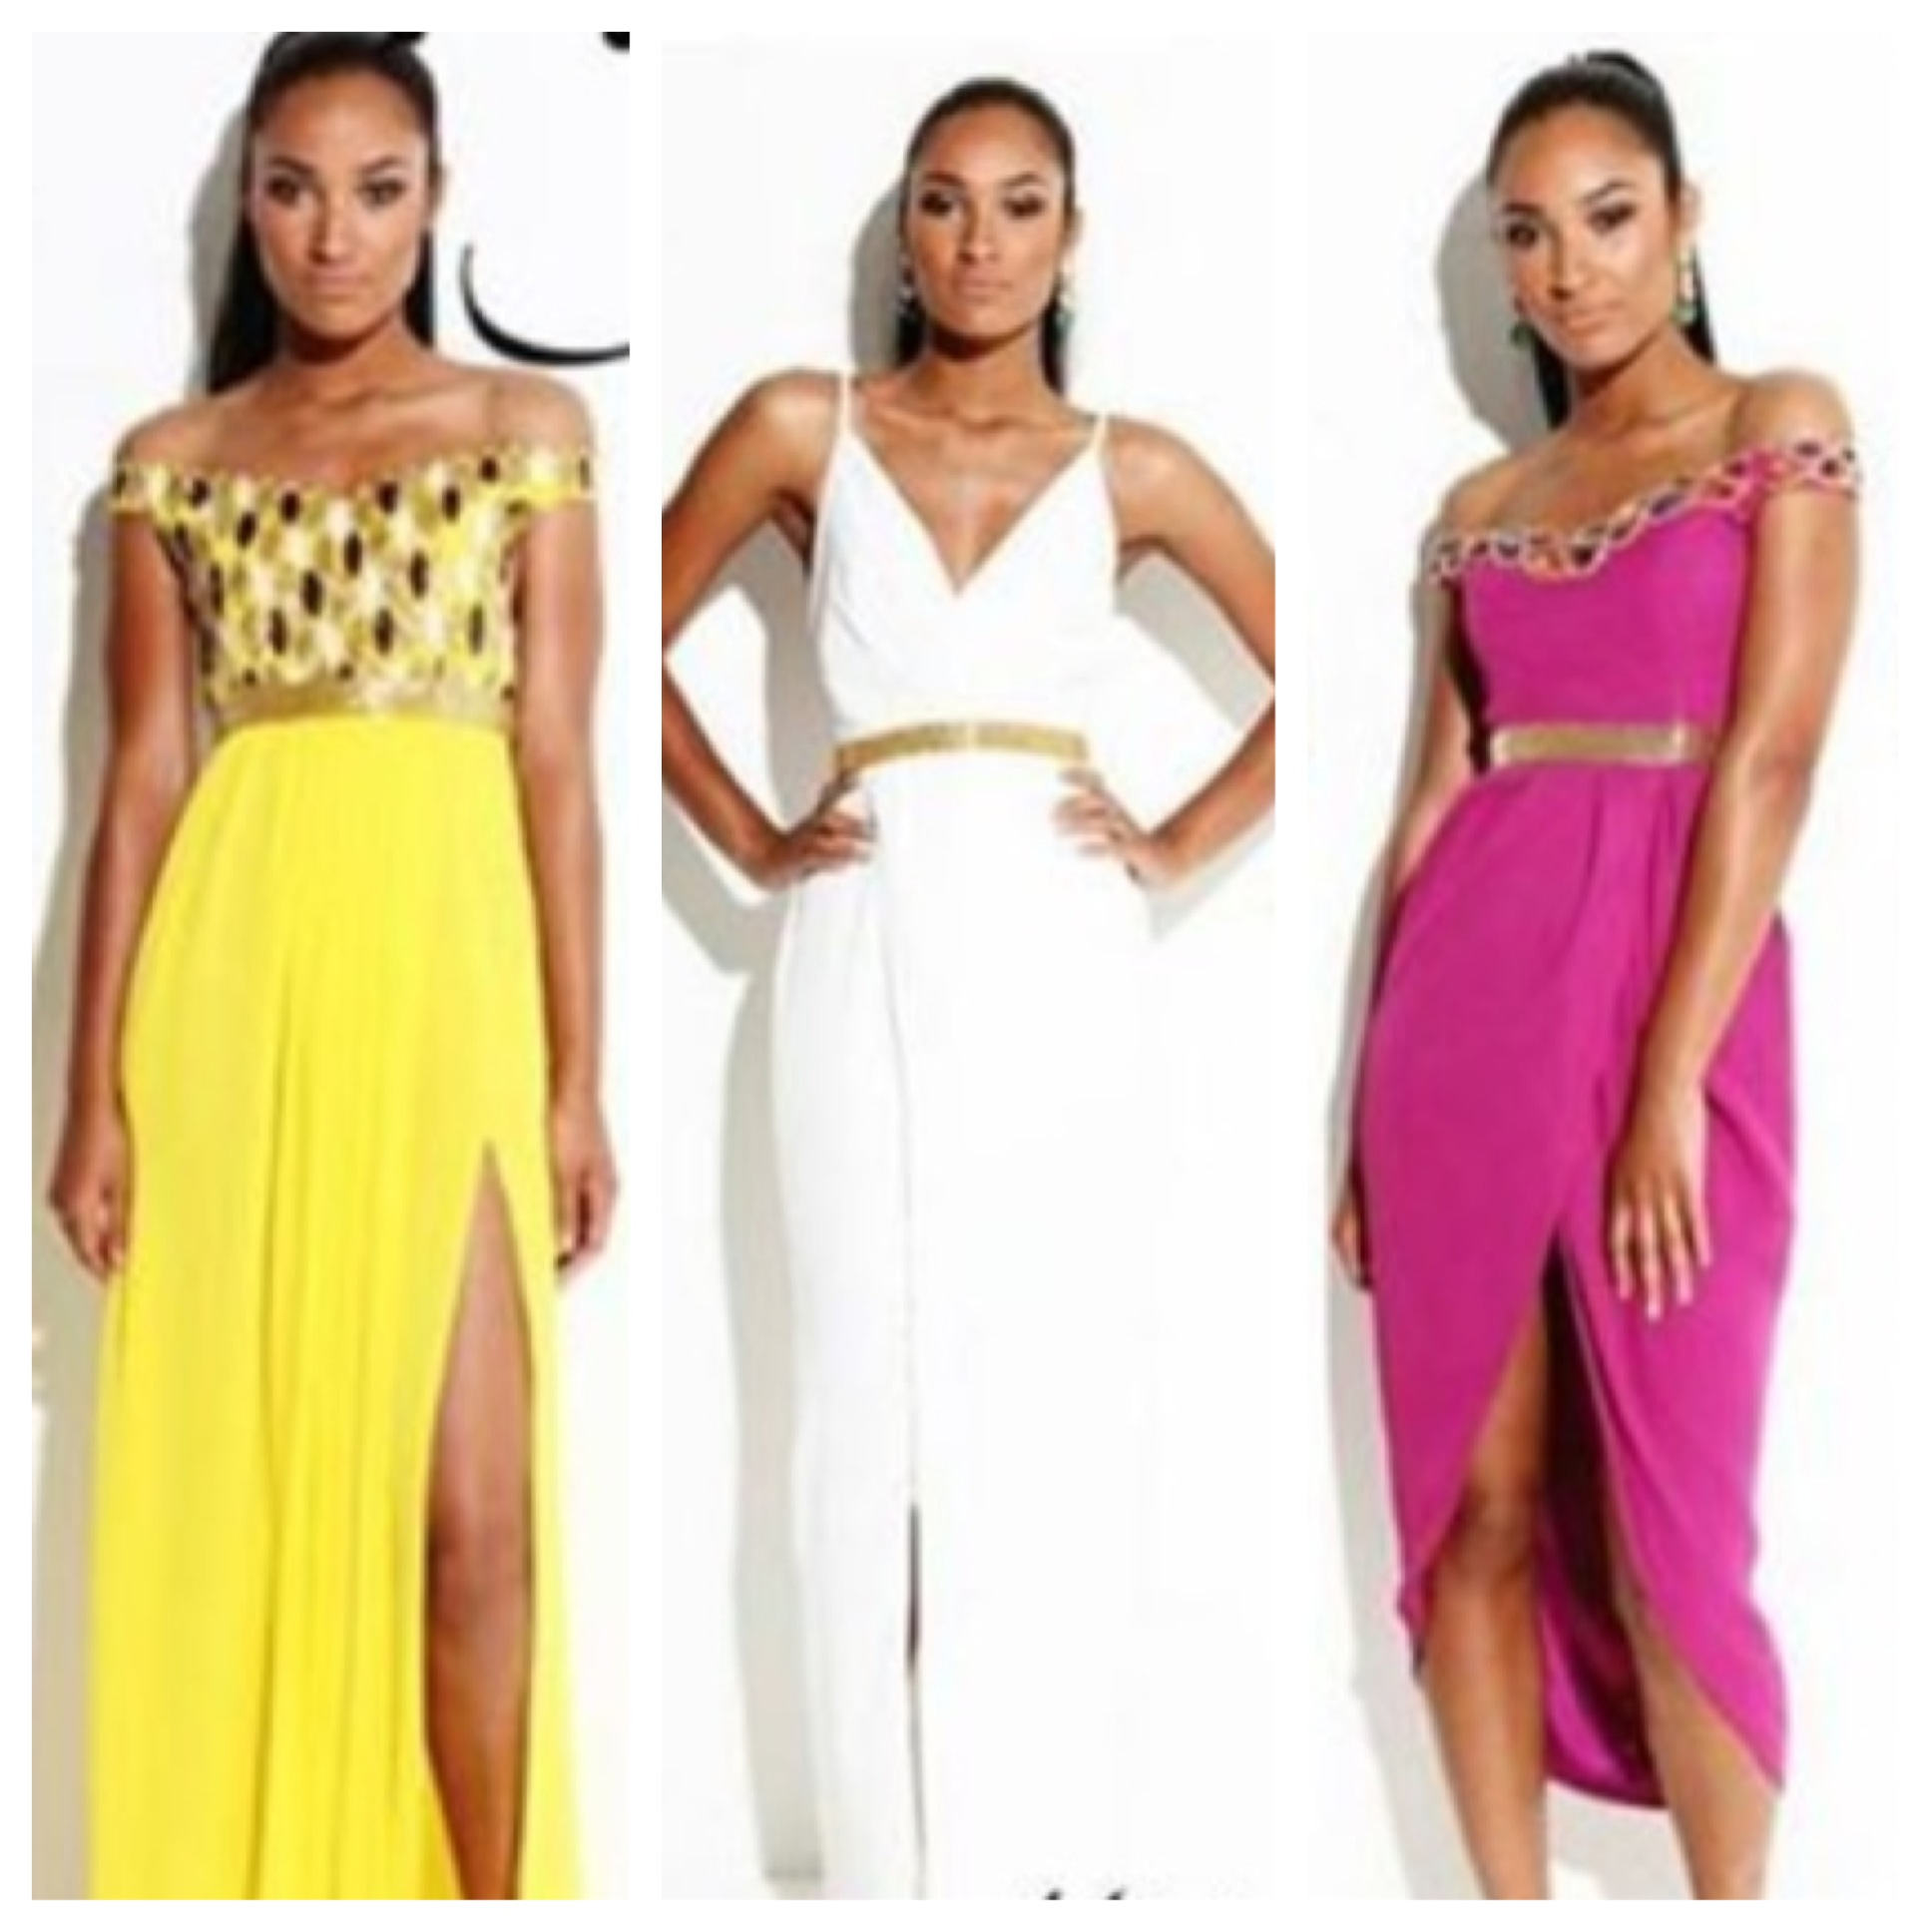 Virgos Lounge is a fashion line created by three Nigerian designers based in the UK.  They carry fabulous thrift finds as well as original designs that are often characterized by intricate bead work and colorful figure-flattering gowns.  You're guaranteed to turn heads at any ball in one of their designs. Shop them  here   I hope this post helps you find an African design that suits you fabulously for upcoming events this spring! Thanks for visiting.